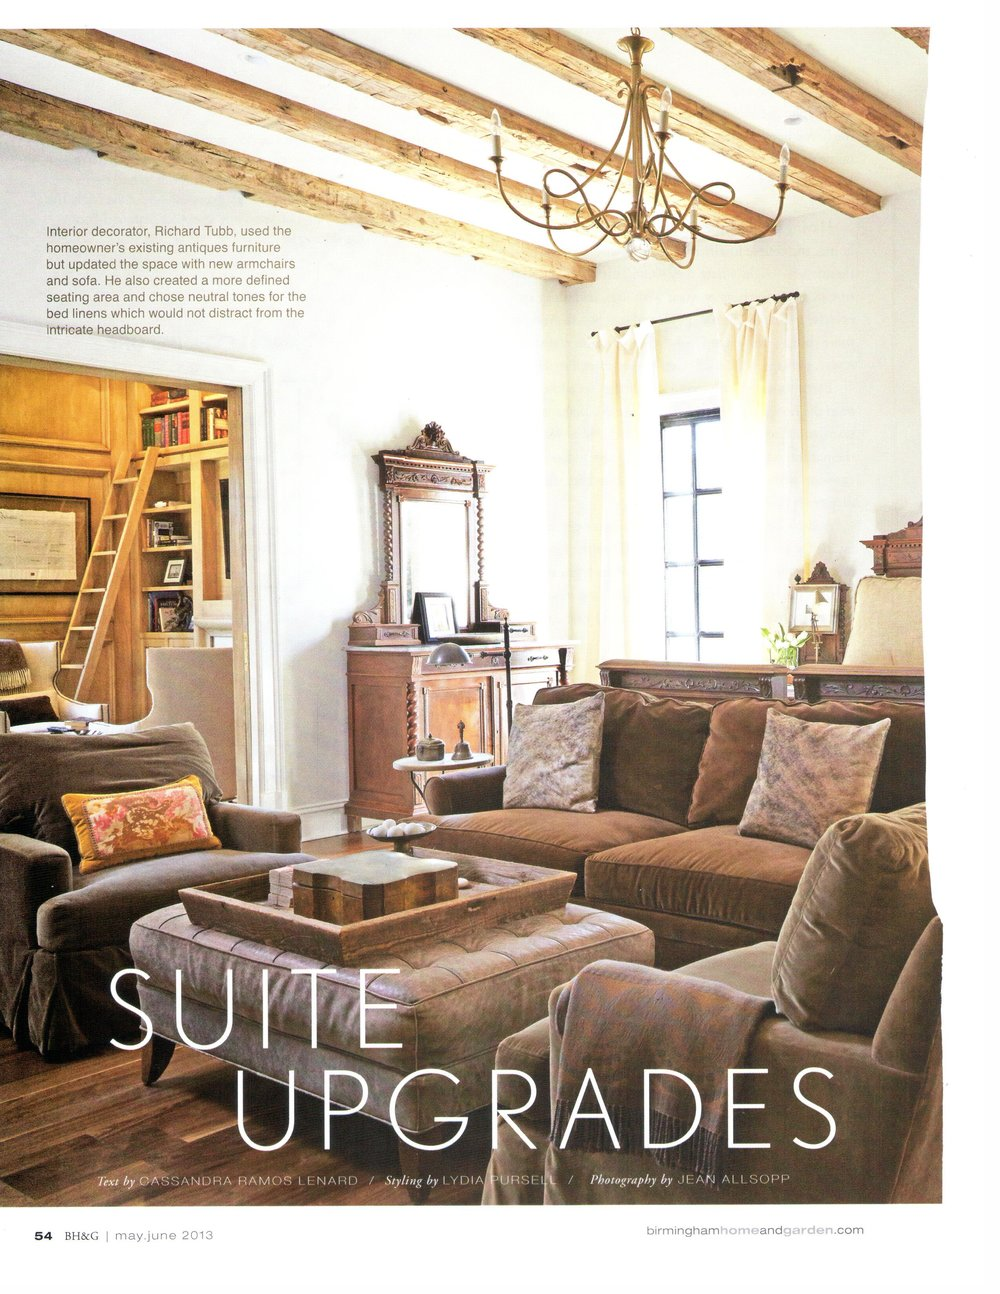 B'Ham Home & Garden Suite Upgrade magazine page 2 architecture exterior and interior design Alabama